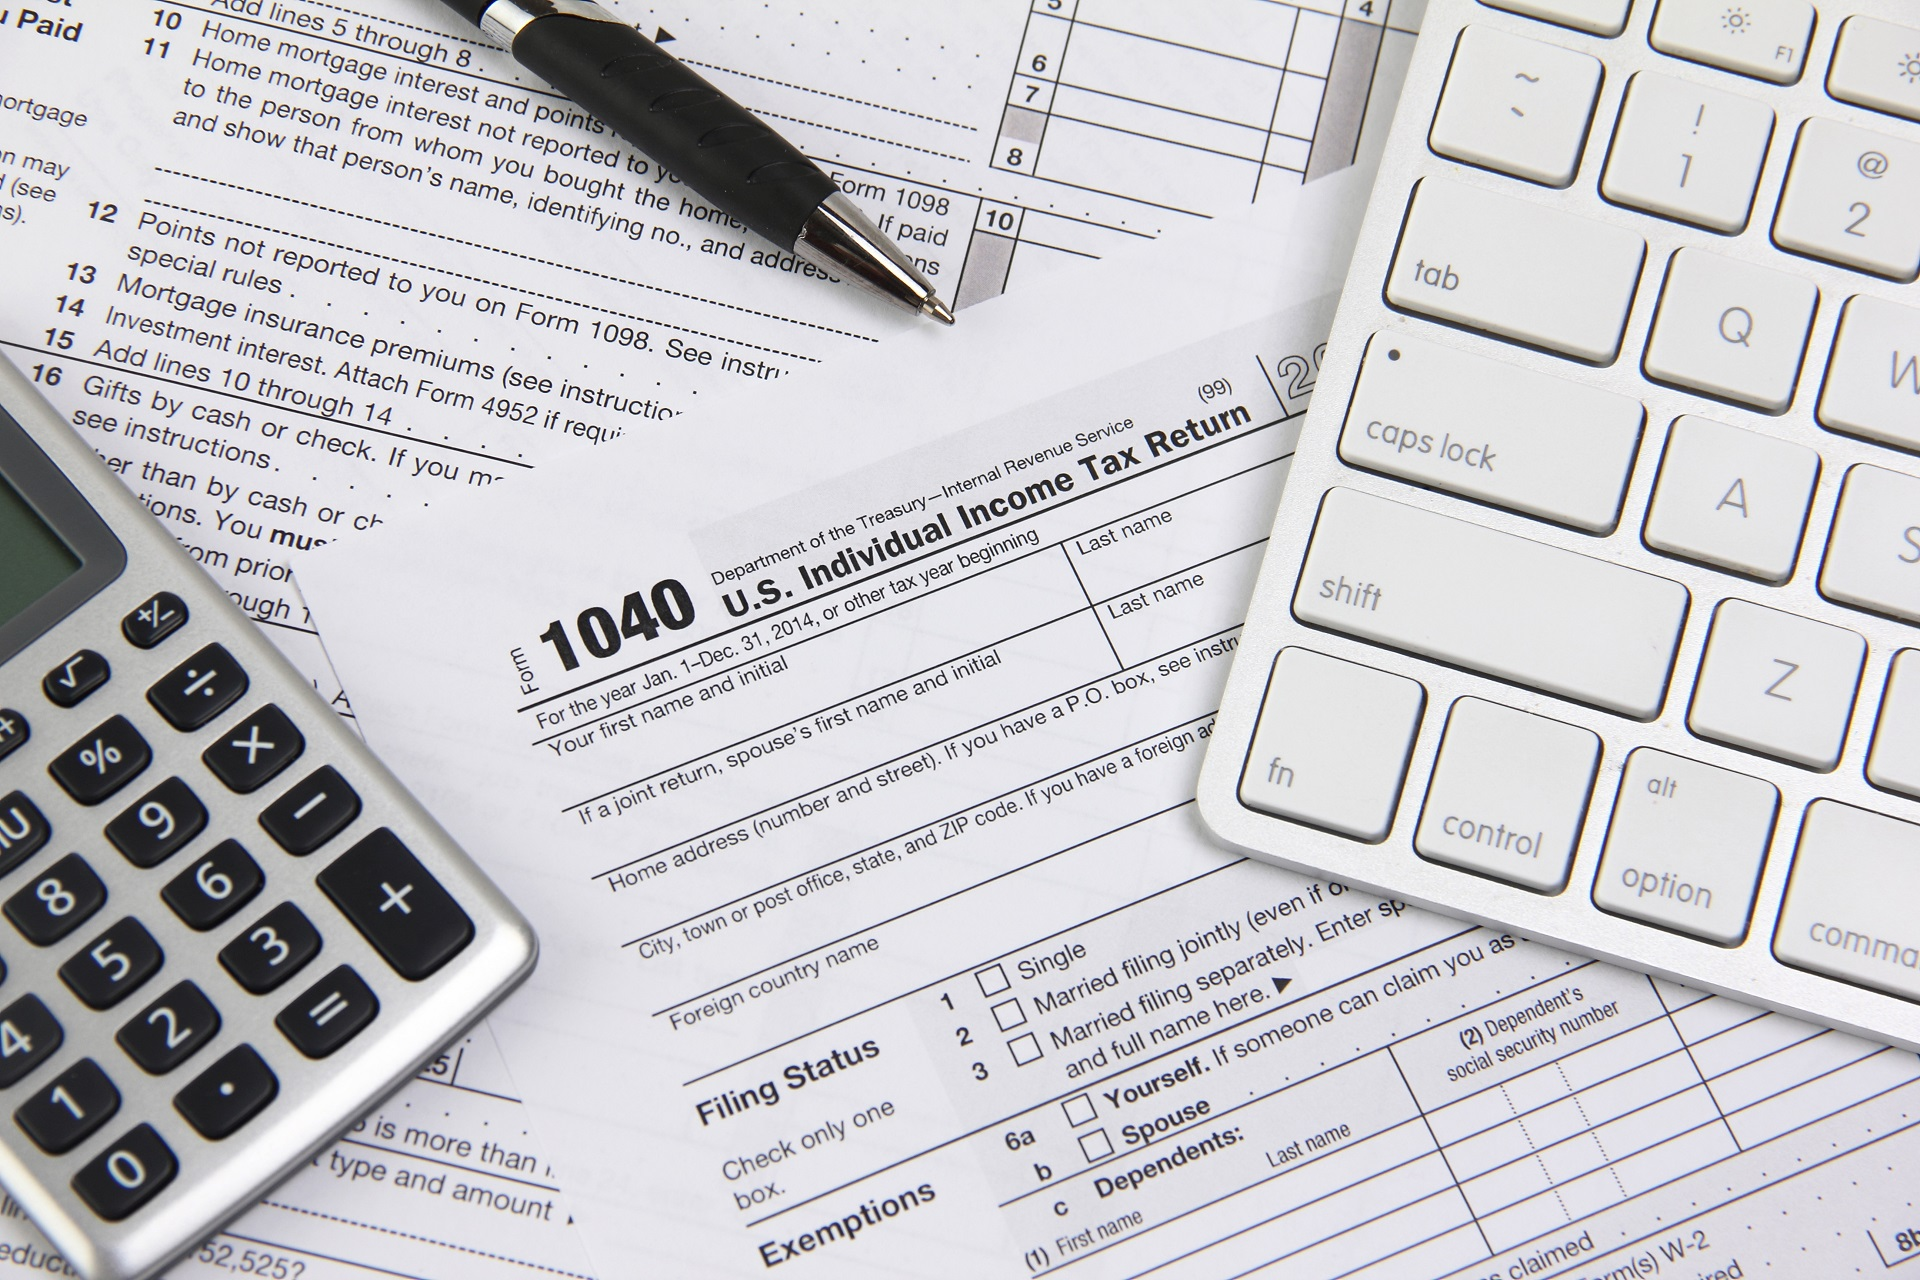 BUSINESS: Tips for Securely Filing Your Taxes